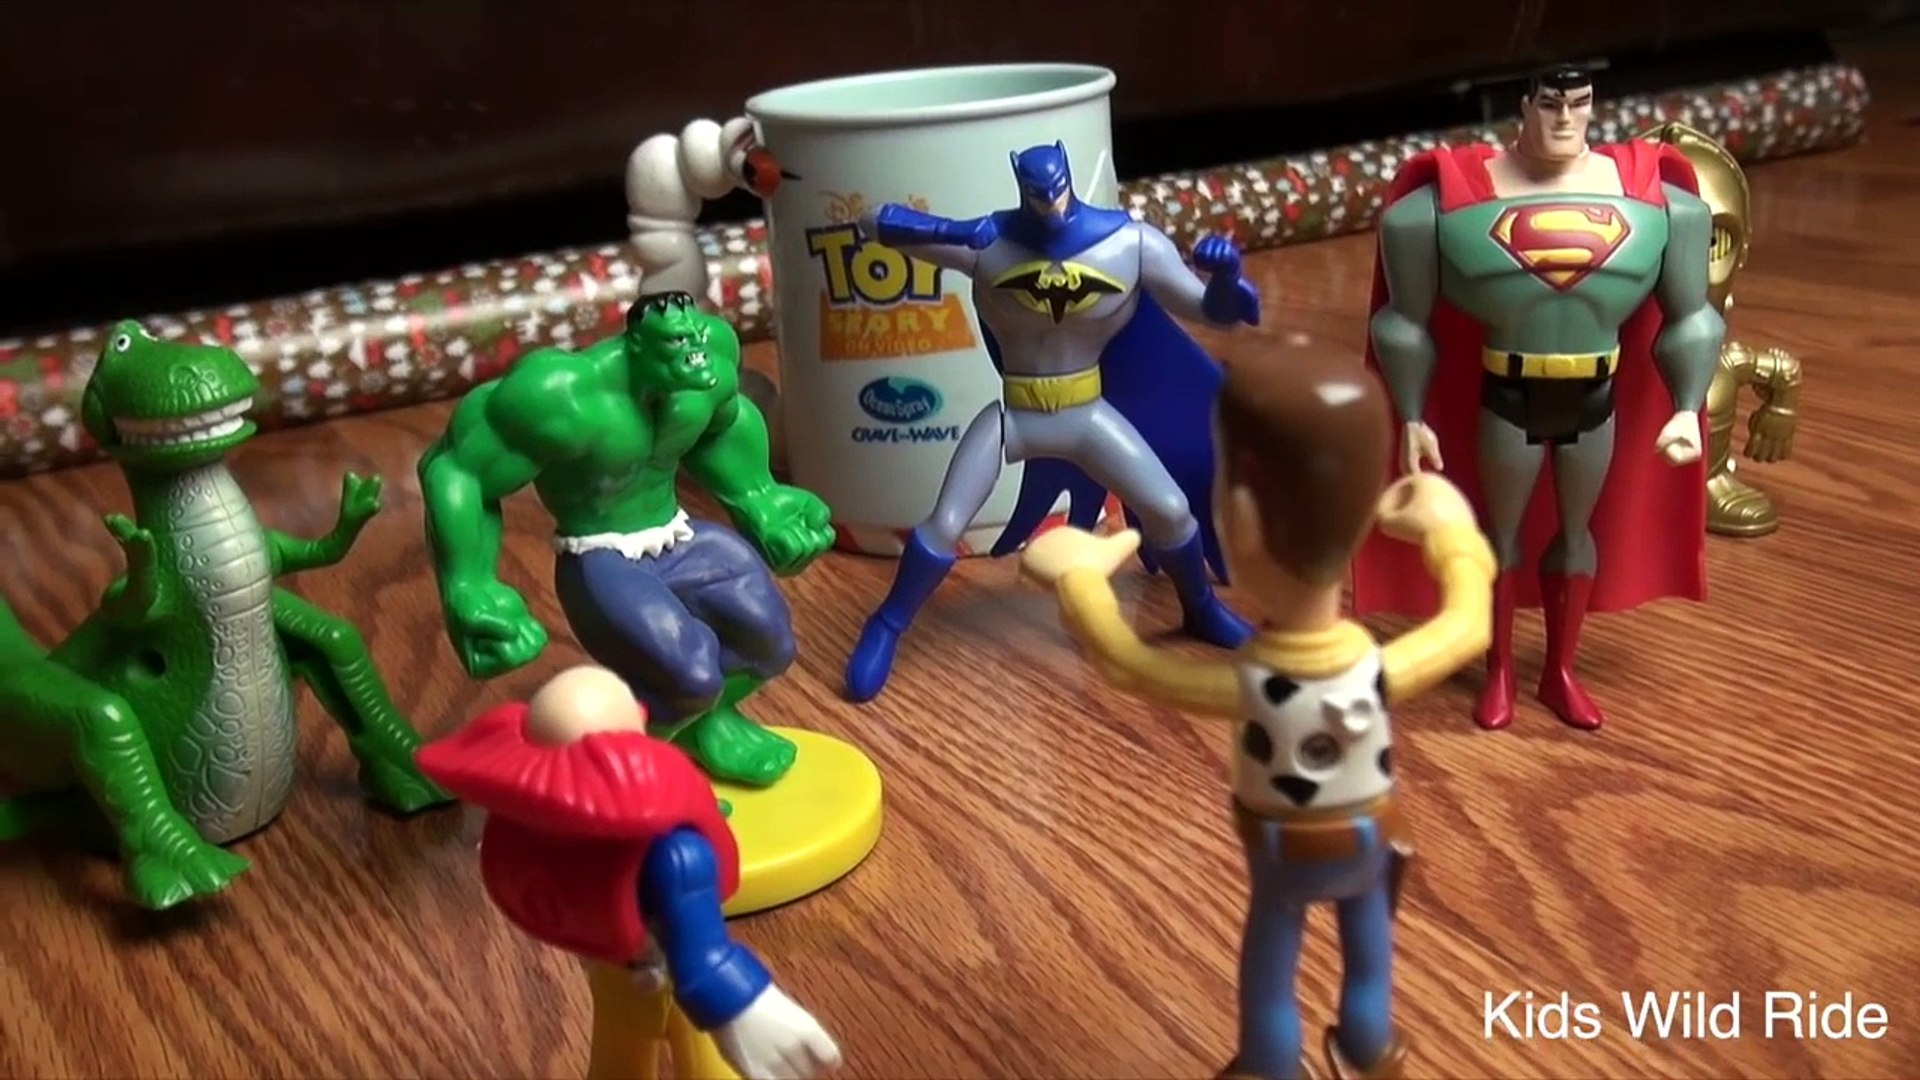 Awesome Cat Attack! TOY STORY 4! Batman Toys, Superman, Hulk, Avengers, STAR WARS, Toy Sto